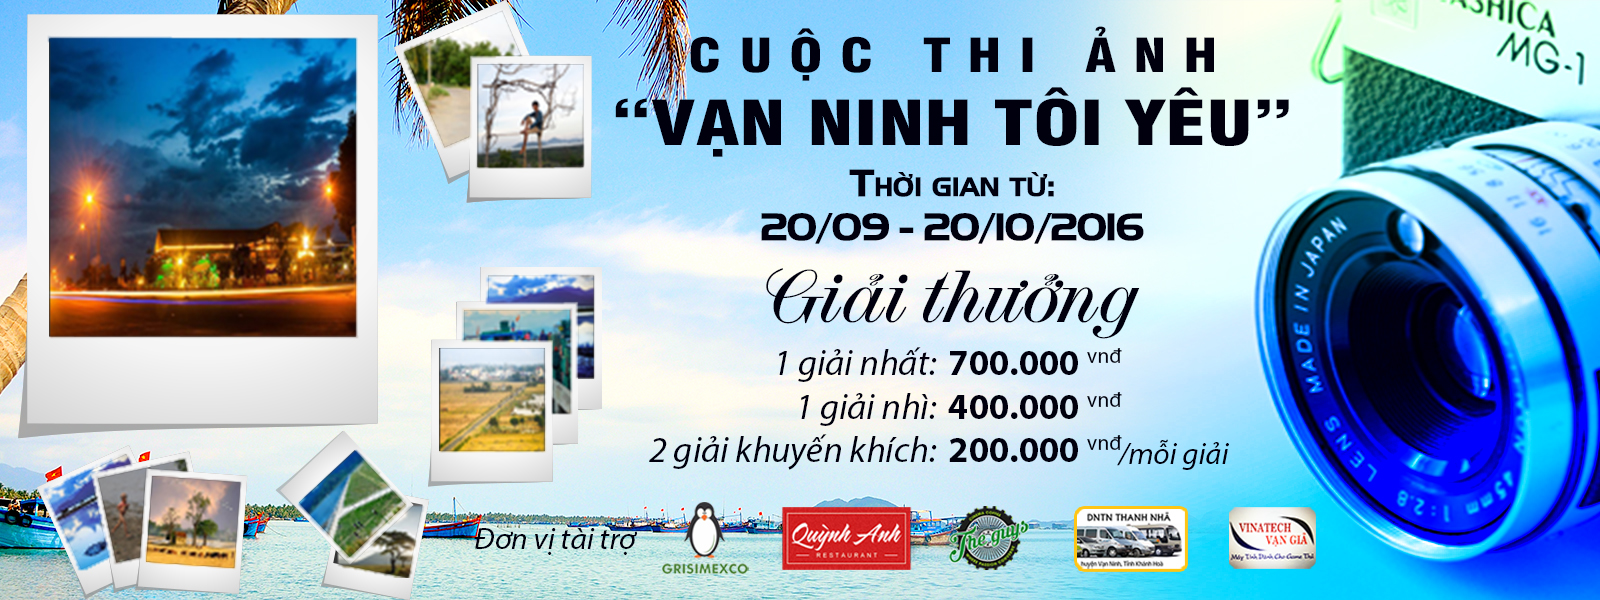 banner-thi-anh-2016